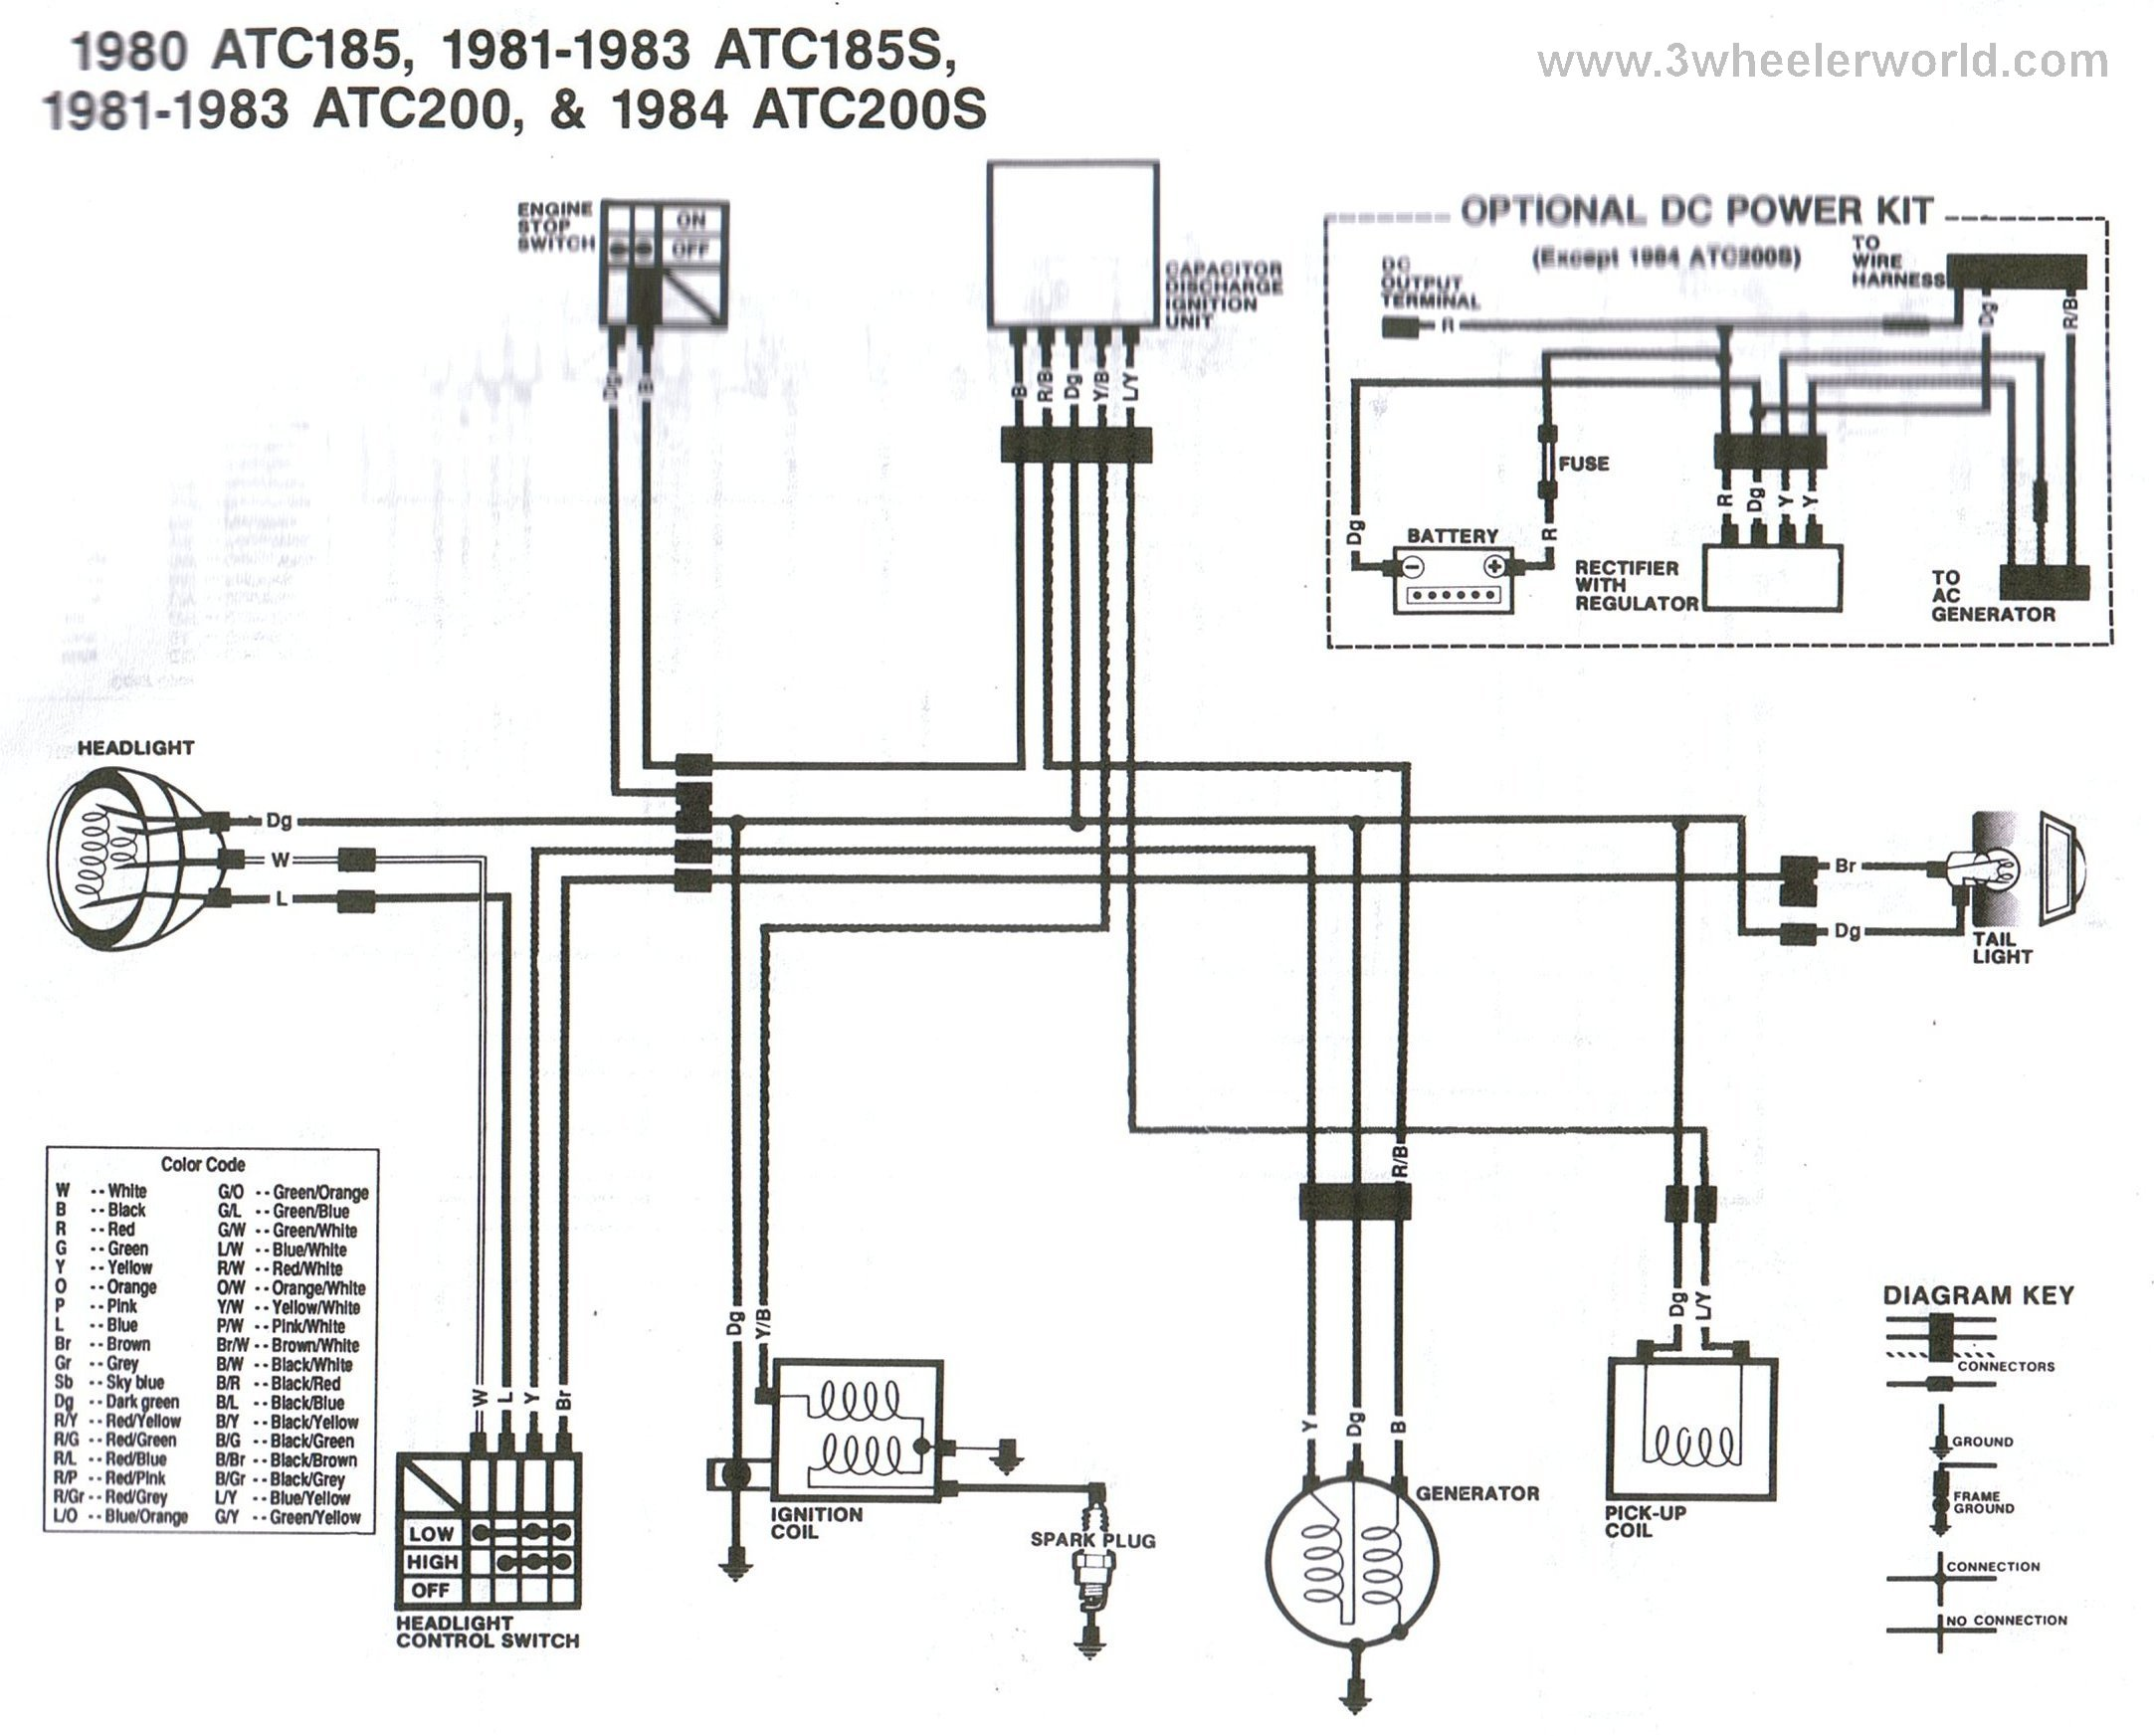 1984 Honda Wiring Diagram - wiring diagram oline for everyone on